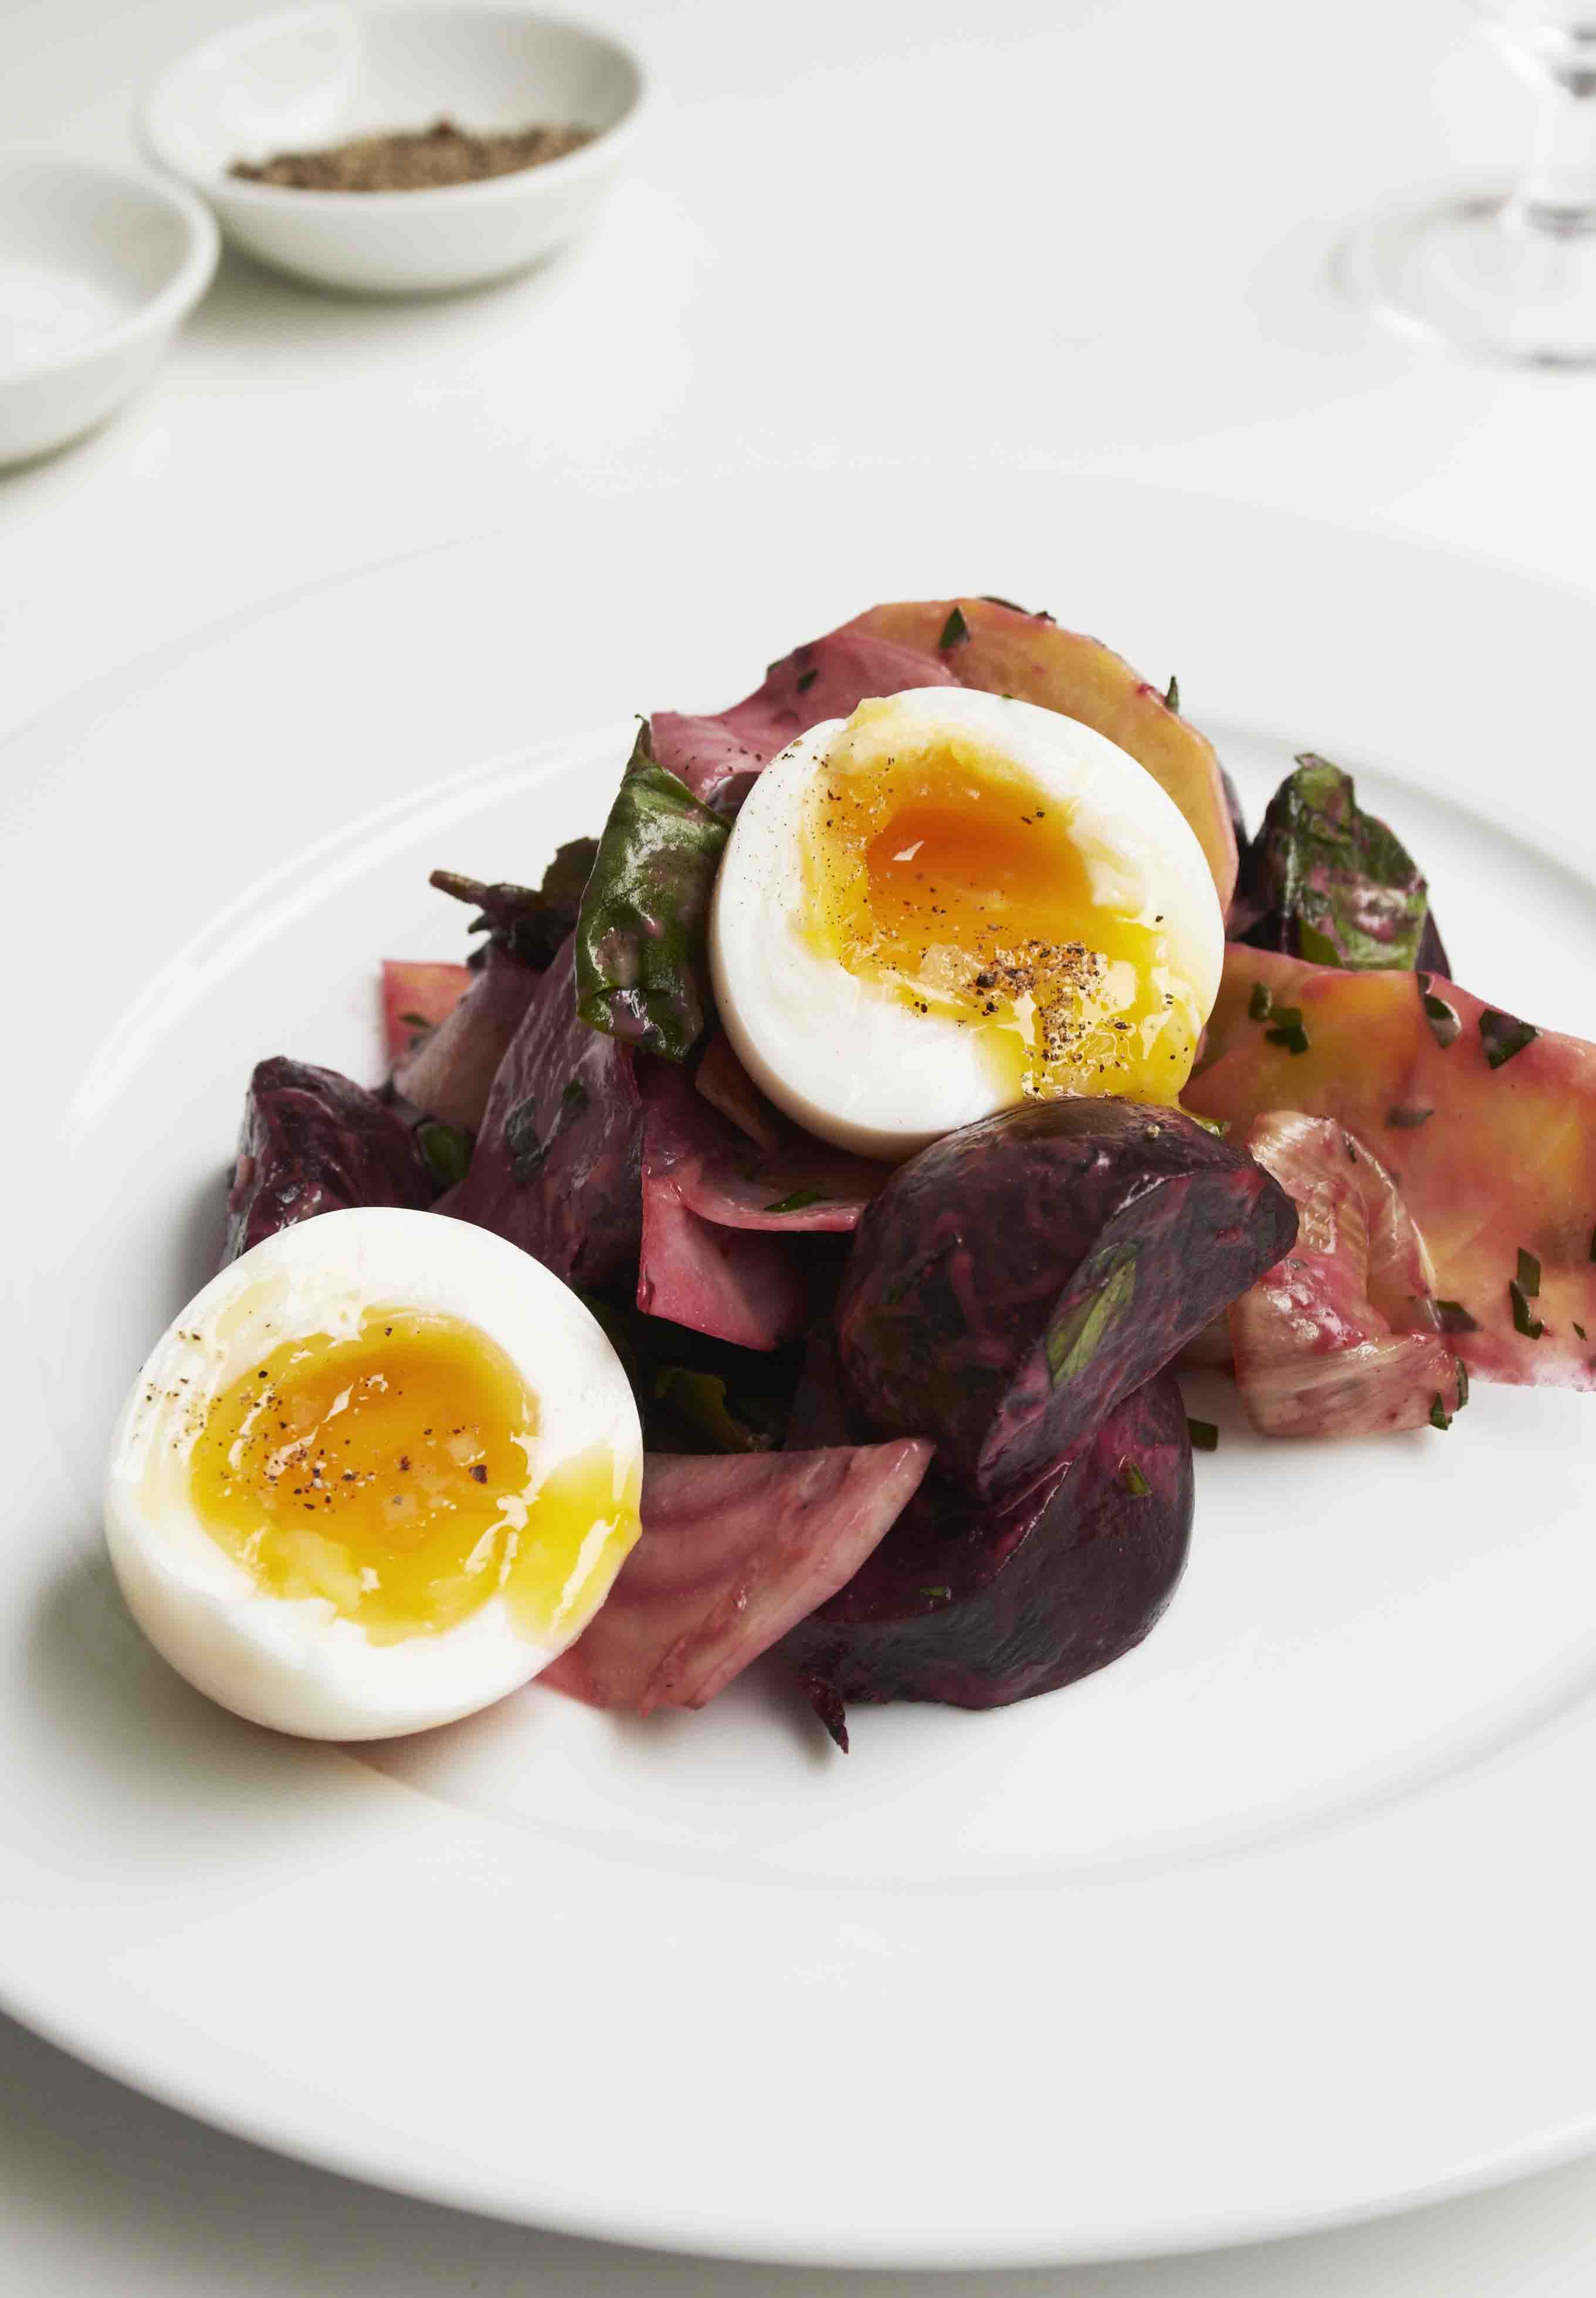 Beetroot salad with poached eggs on top